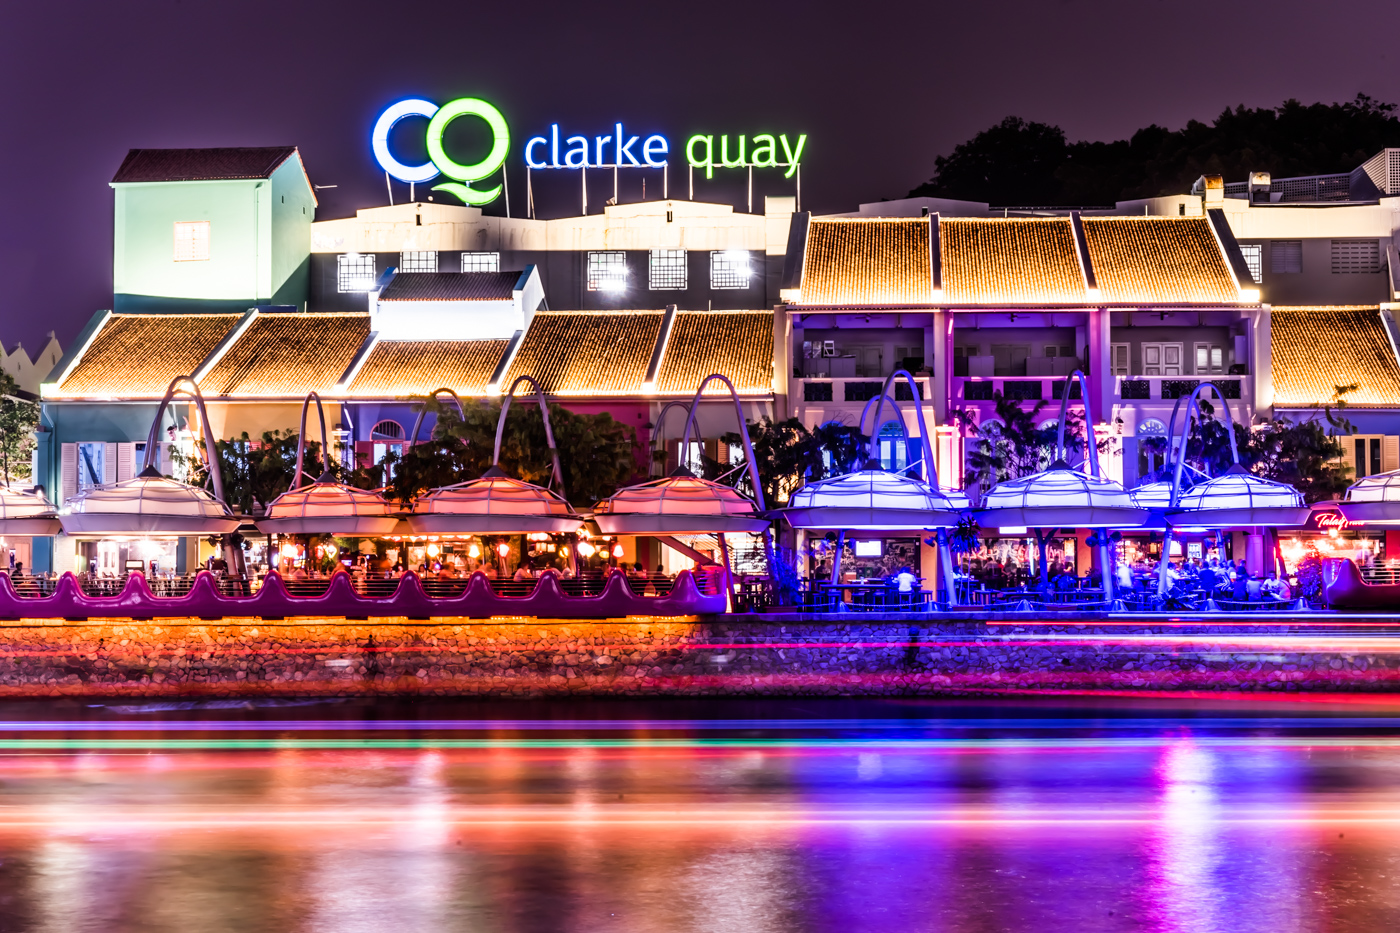 Clarke Quay: the largest night spot in Singapore